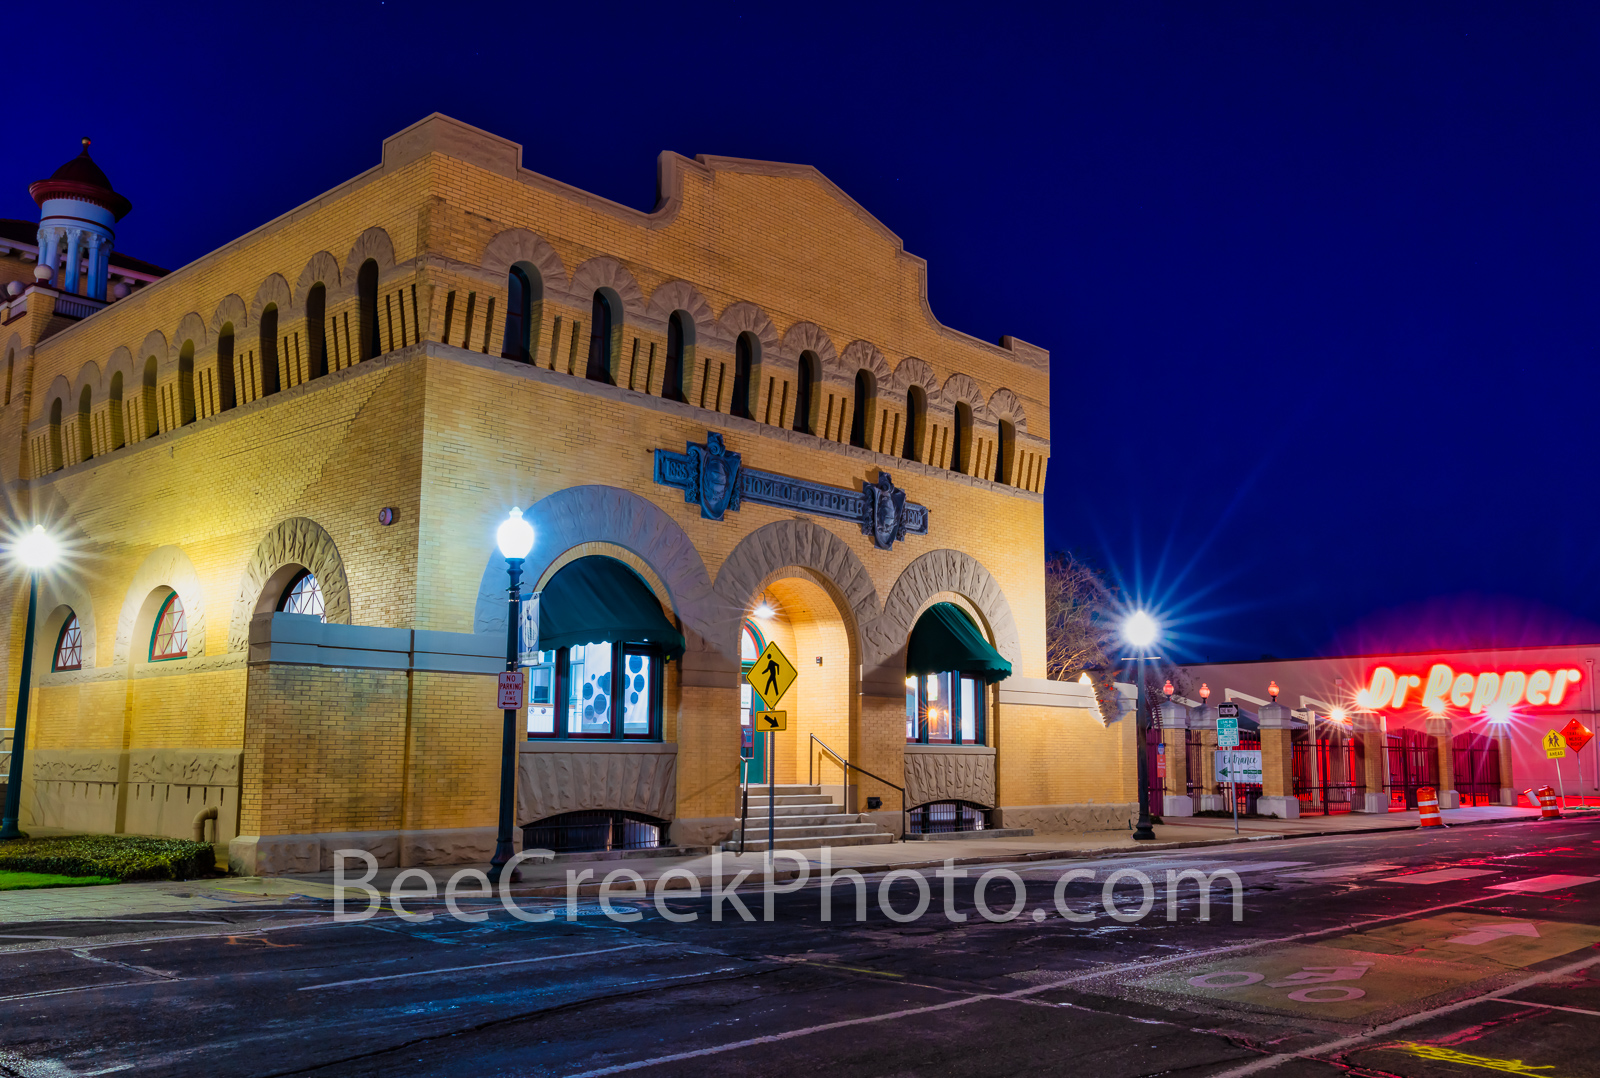 Dr Pepper Museum Waco Texas - This is a historical musuem for the Dr Pepper Museum in Waco Texas where the soft drink was created...